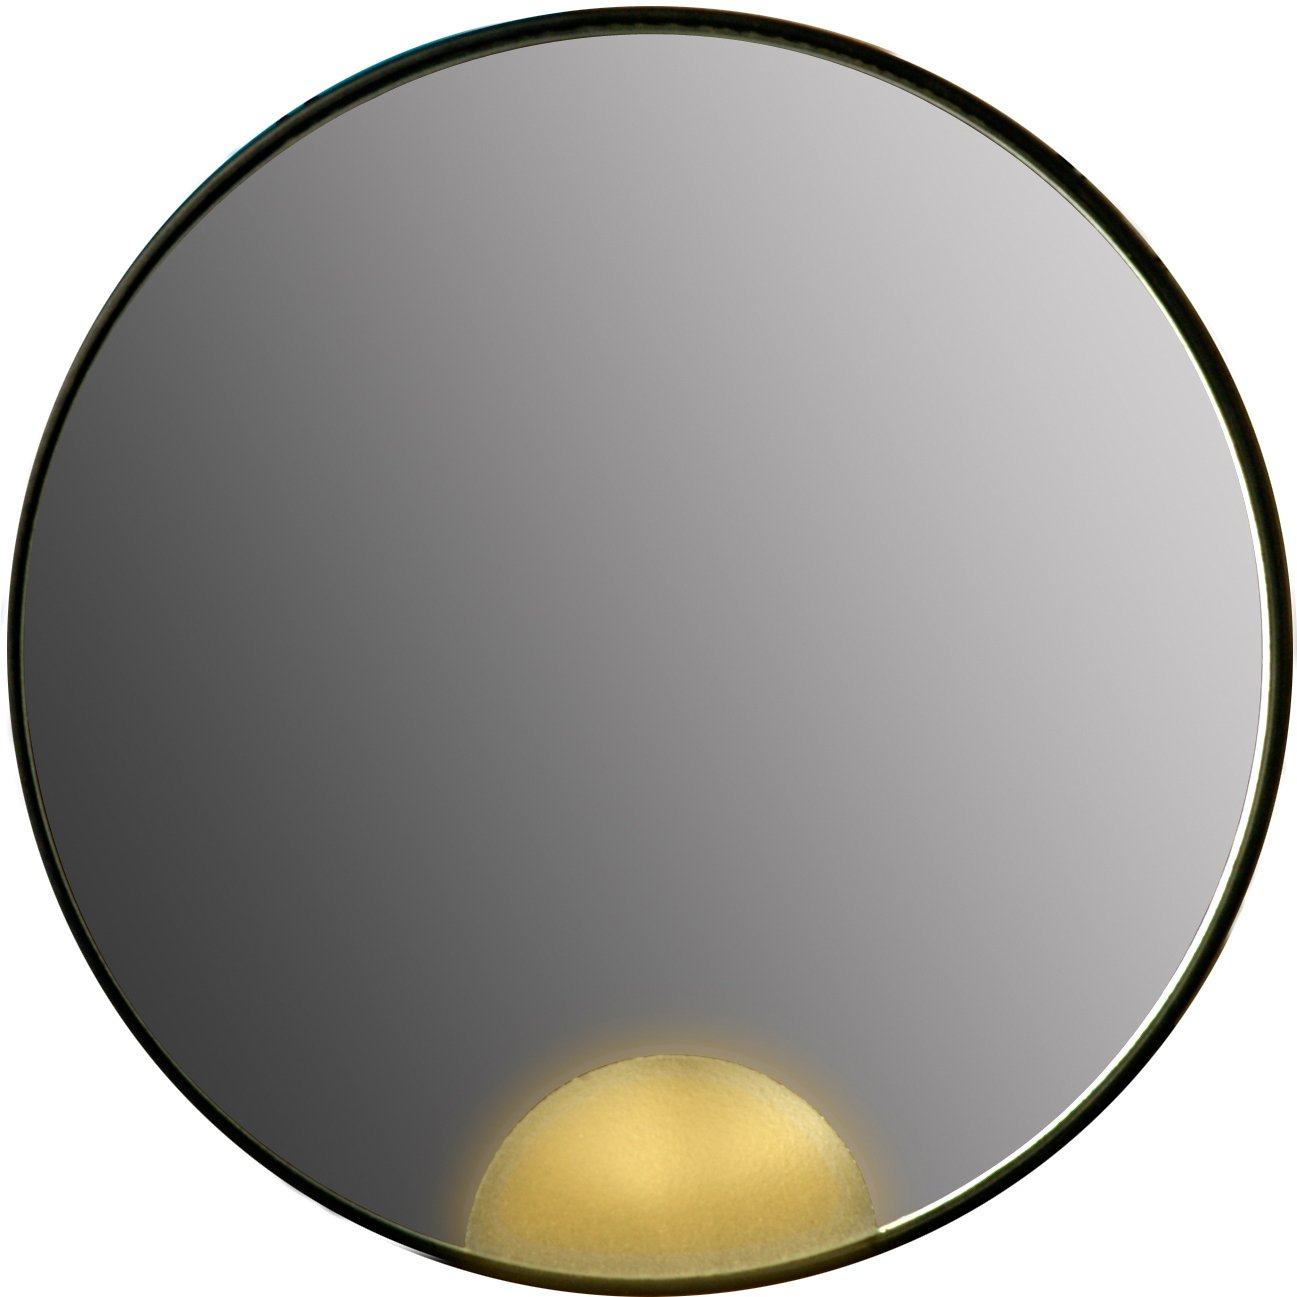 Amazon com Floxite Fl 20lmm 20x Led Lighted Mirror Mate With Suction Cups  Black Personal Makeup. 20x Mirror Lighted